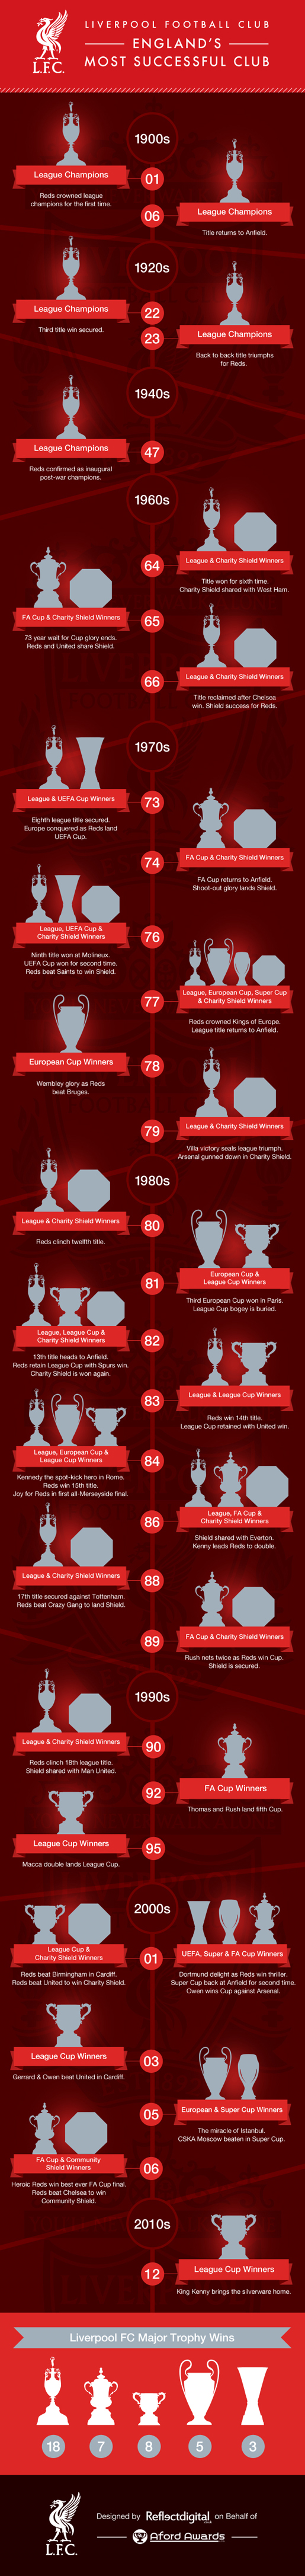 history-of-liverpool-trophies